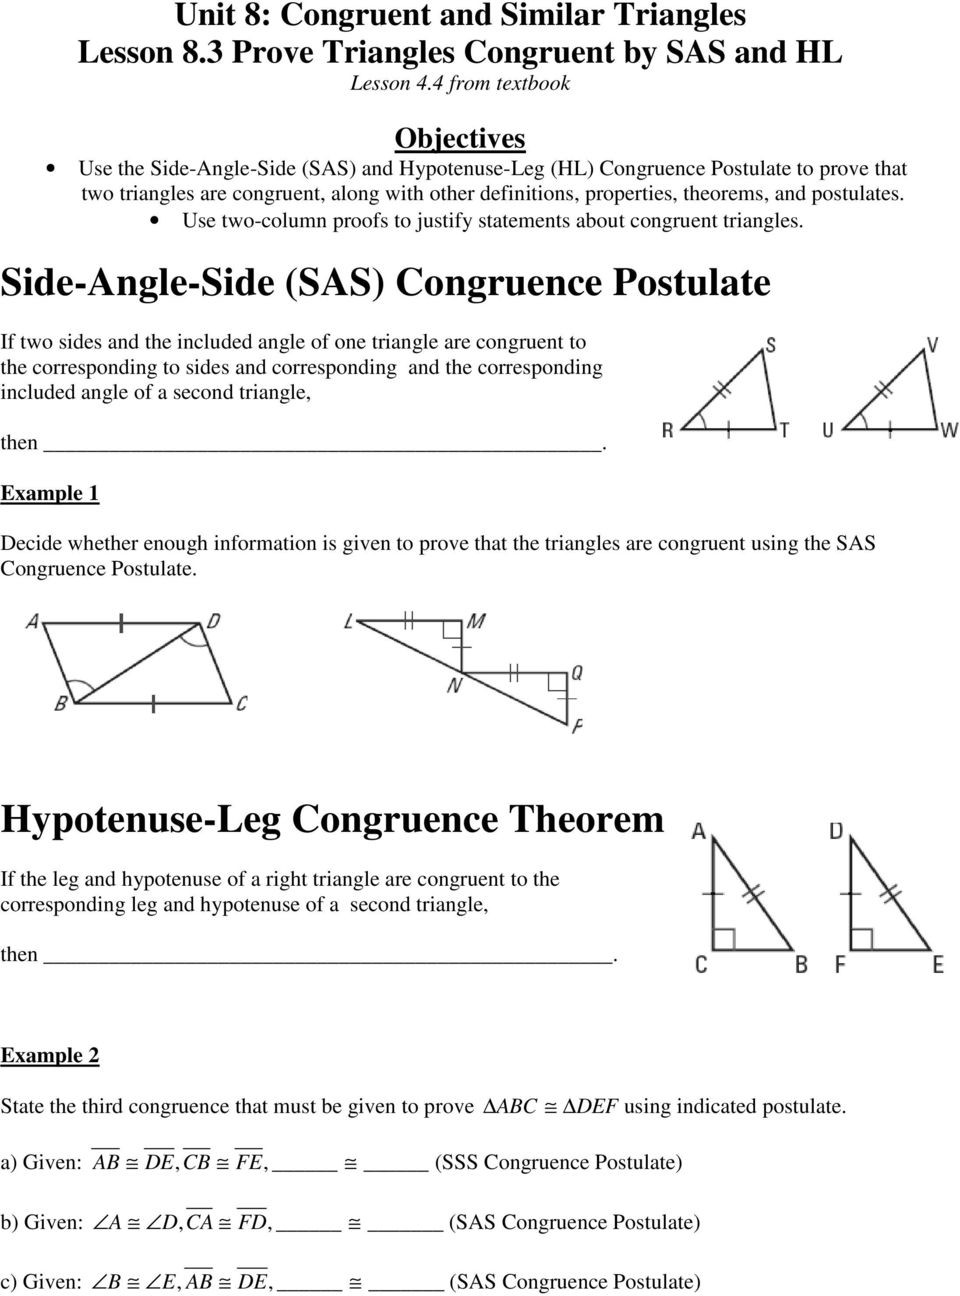 Proving Triangles Congruent Worksheet Answers Unit 8 Congruent and Similar Triangles Lesson 8 1 Apply